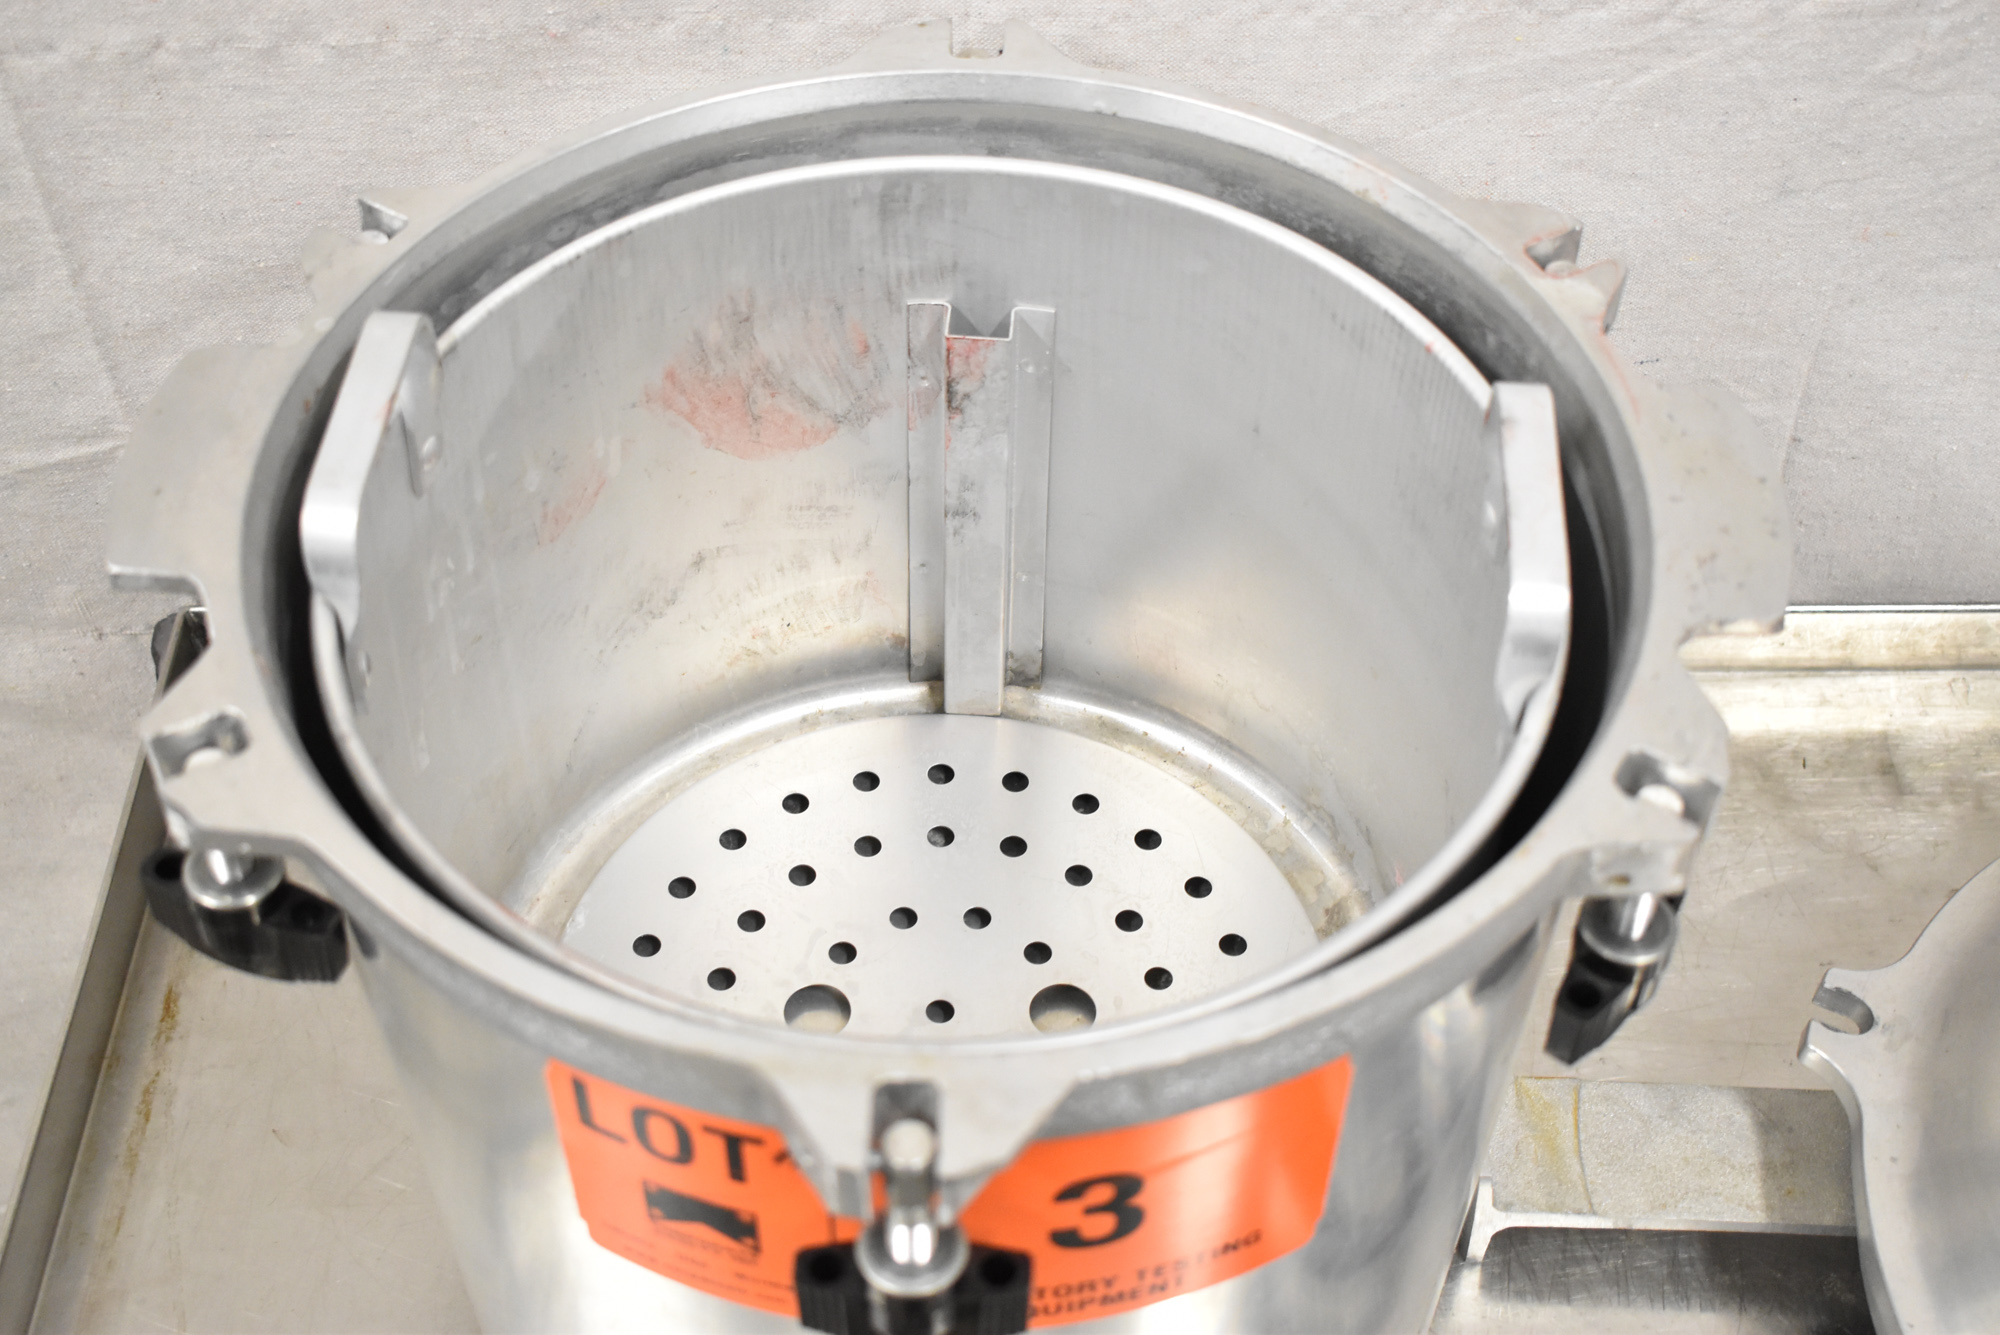 """ALL AMERICAN 25X-1 ELECTRIC PRESSURE STEAM STERILIZER WITH 11.5"""" DIAMETER AND 8"""" ALUMINUM POT, 260 - Image 4 of 4"""